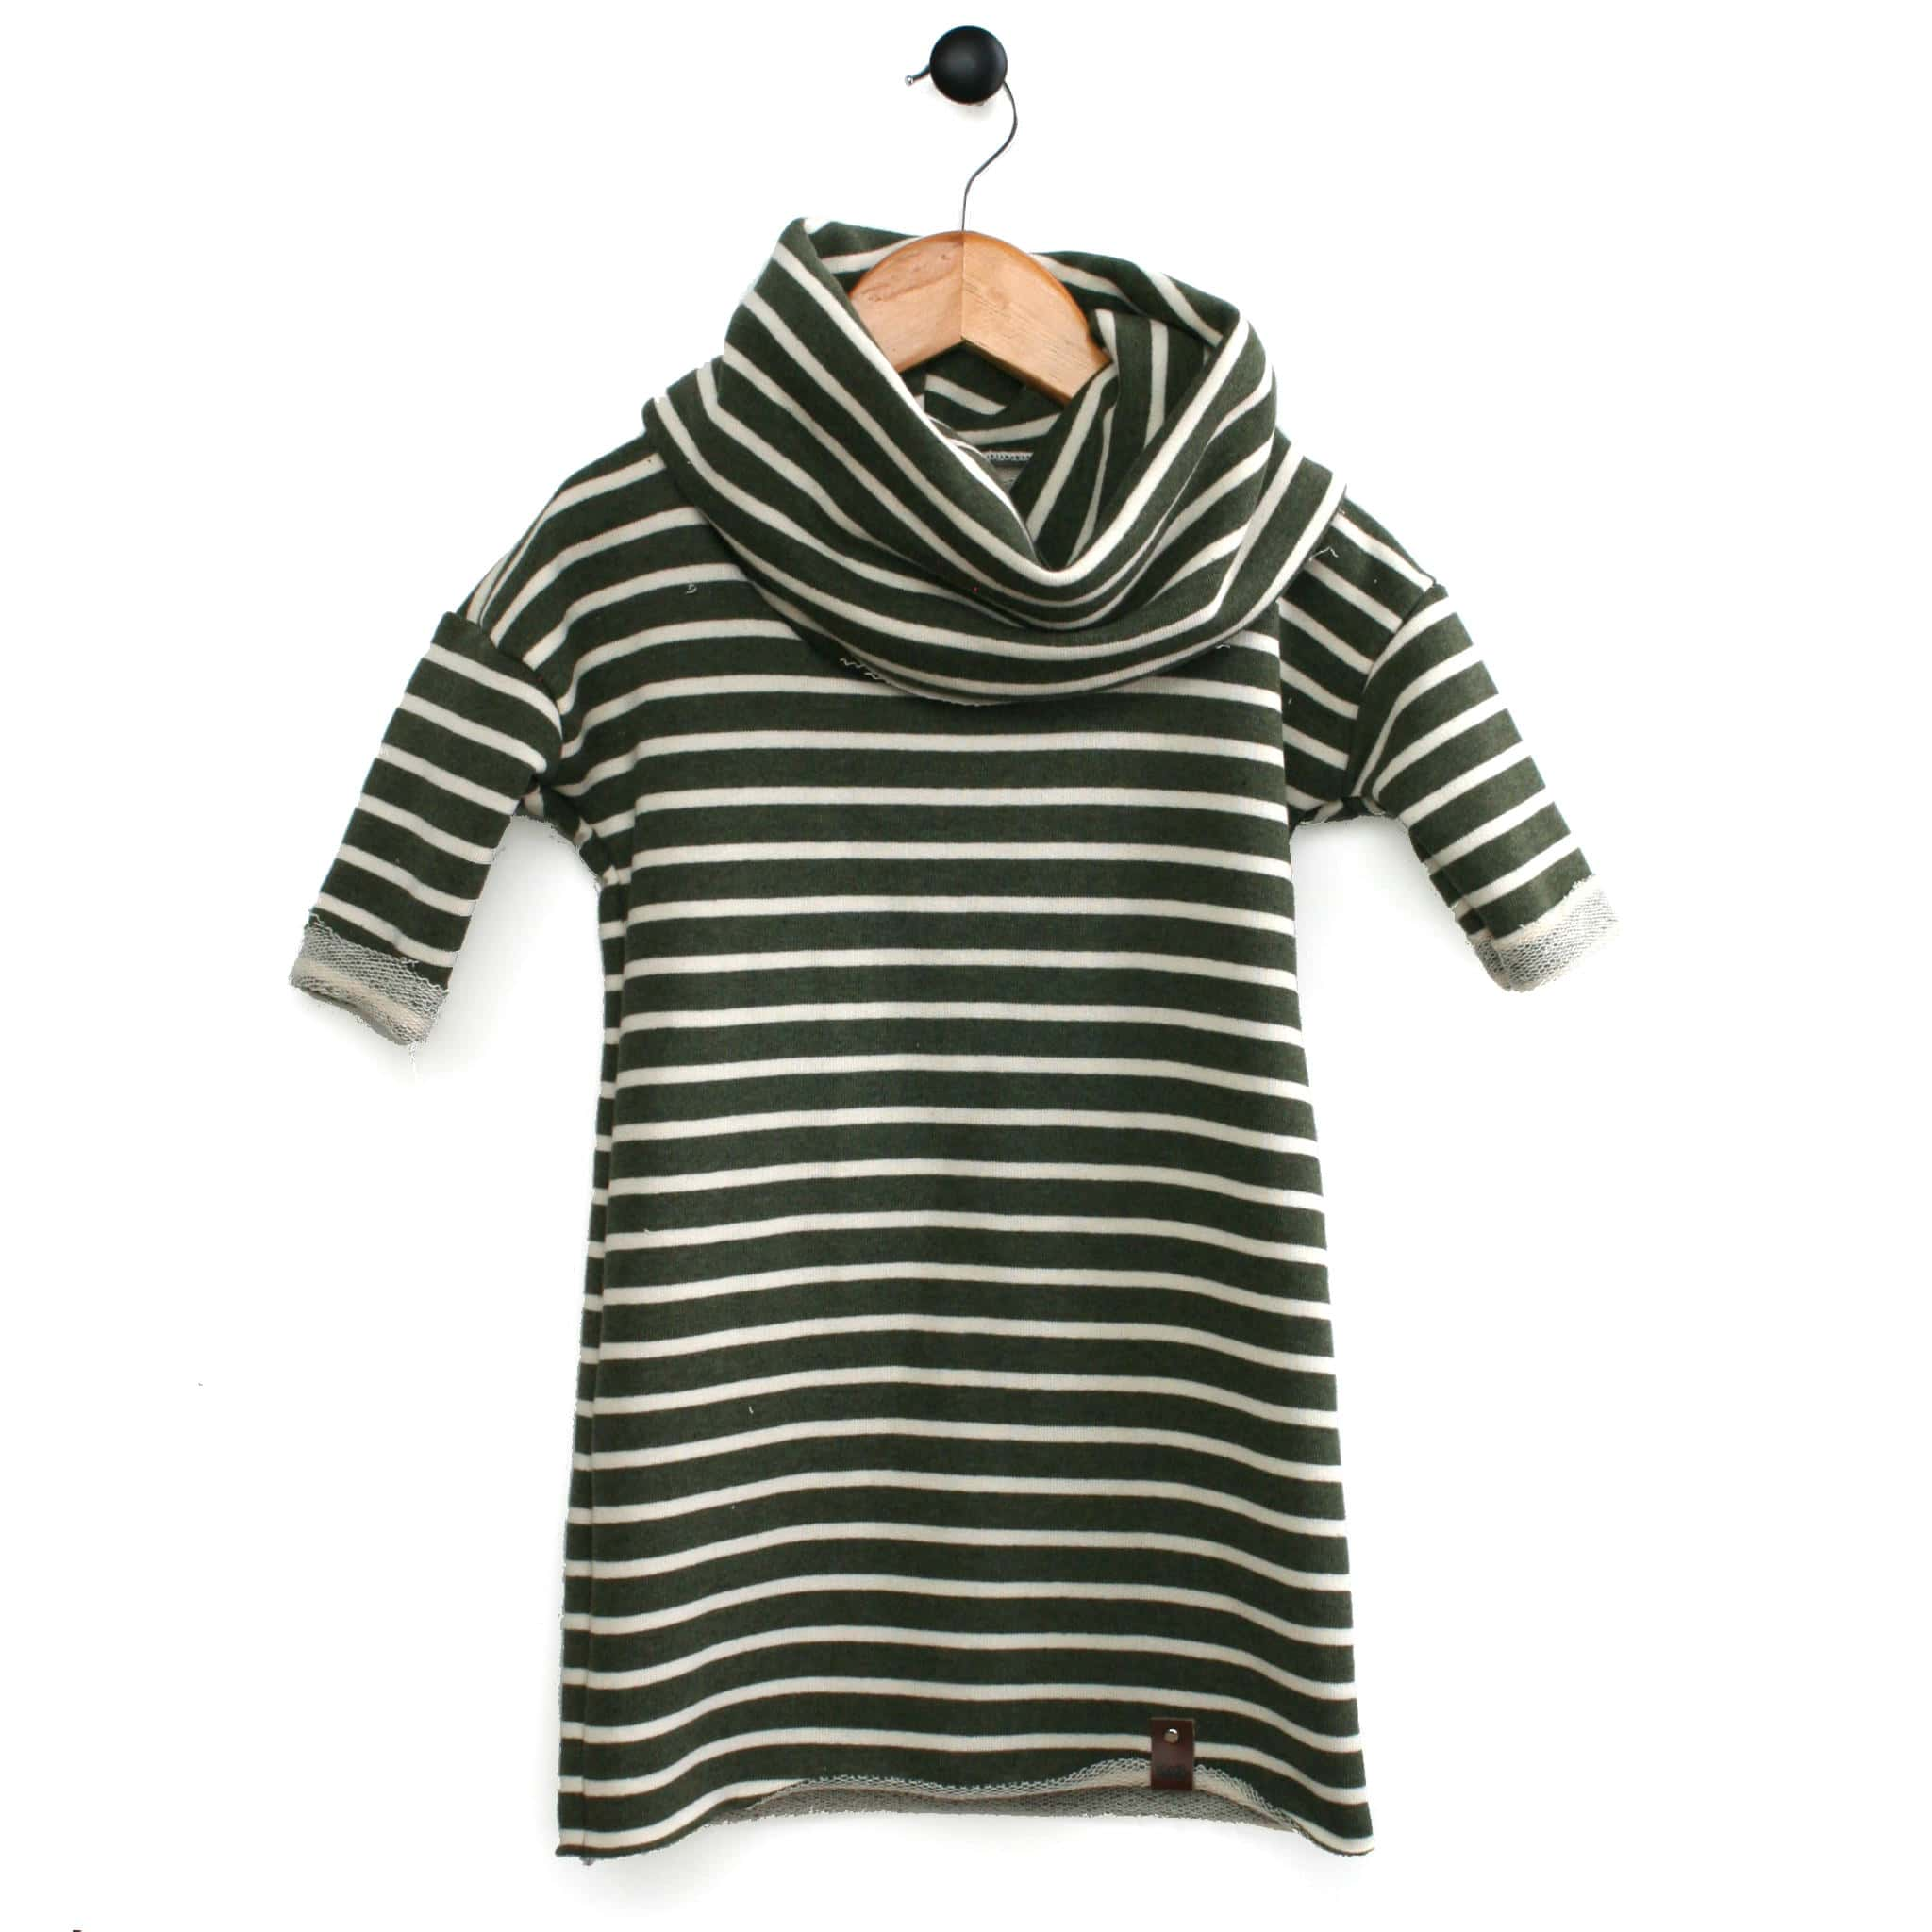 Toddler and big girl stripe dress in Olive and Cream stripe with large cowl neck